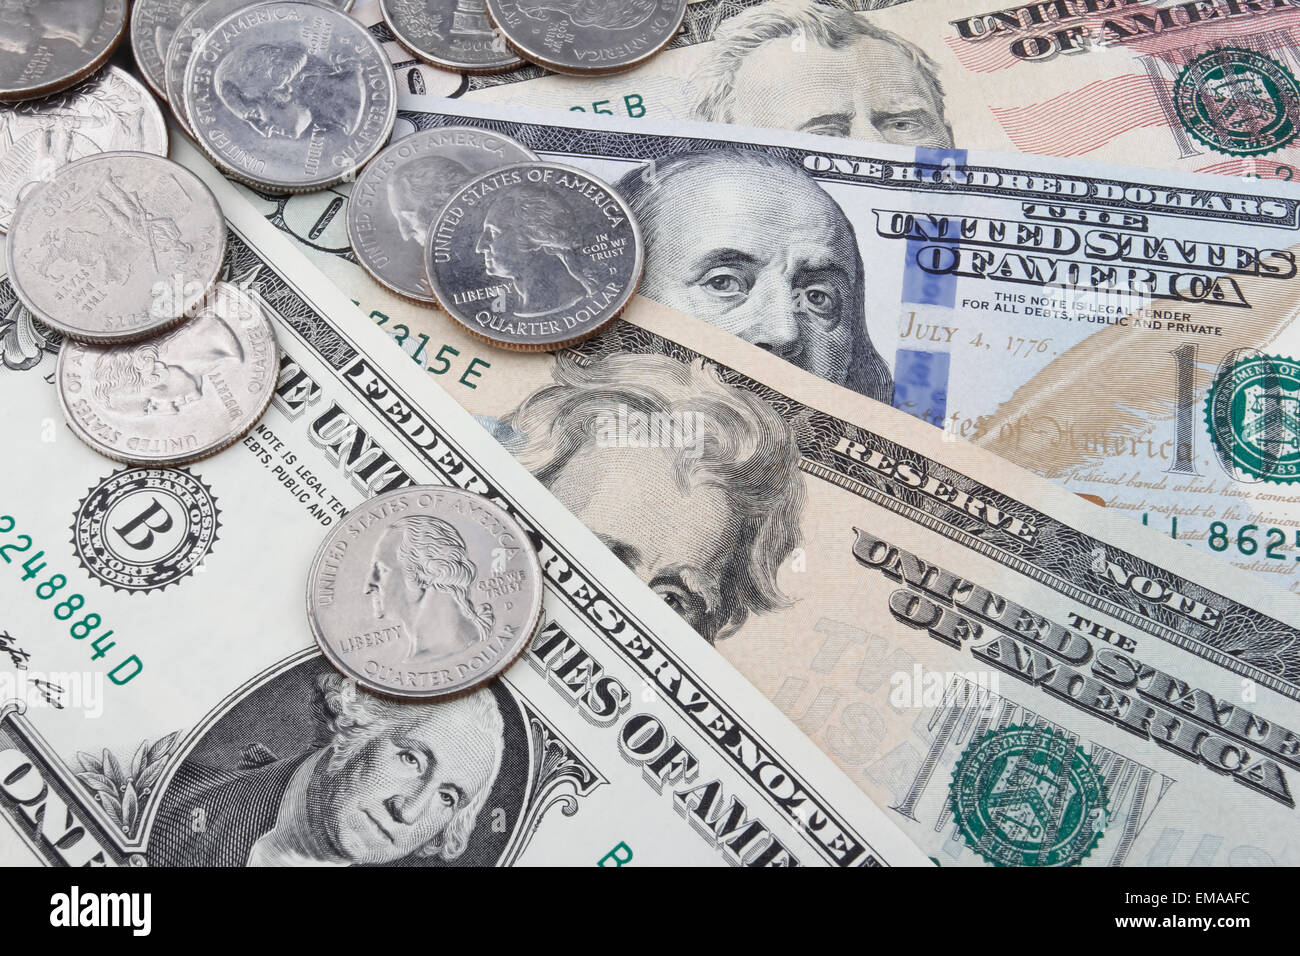 US Dollar (USD) banknotes and coins, coins in upper left corner. - Stock Image